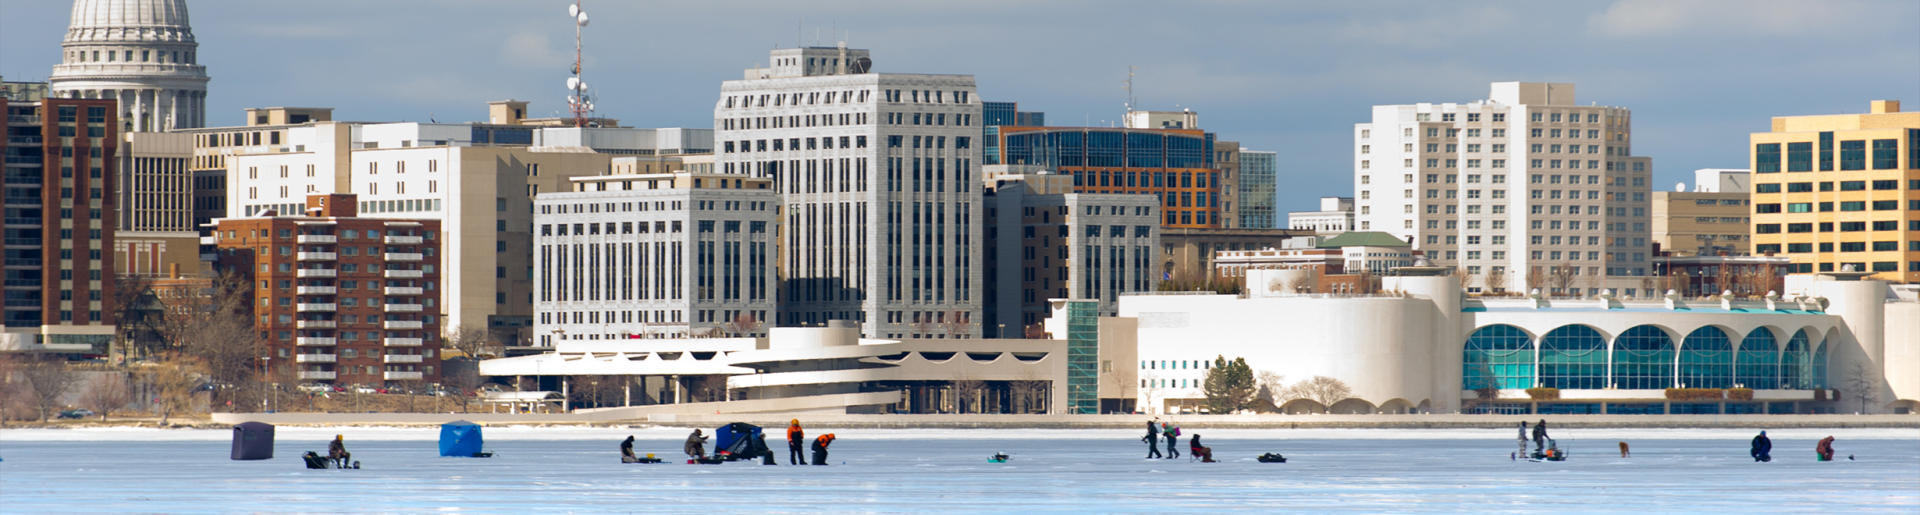 Madison Skyline in Winter